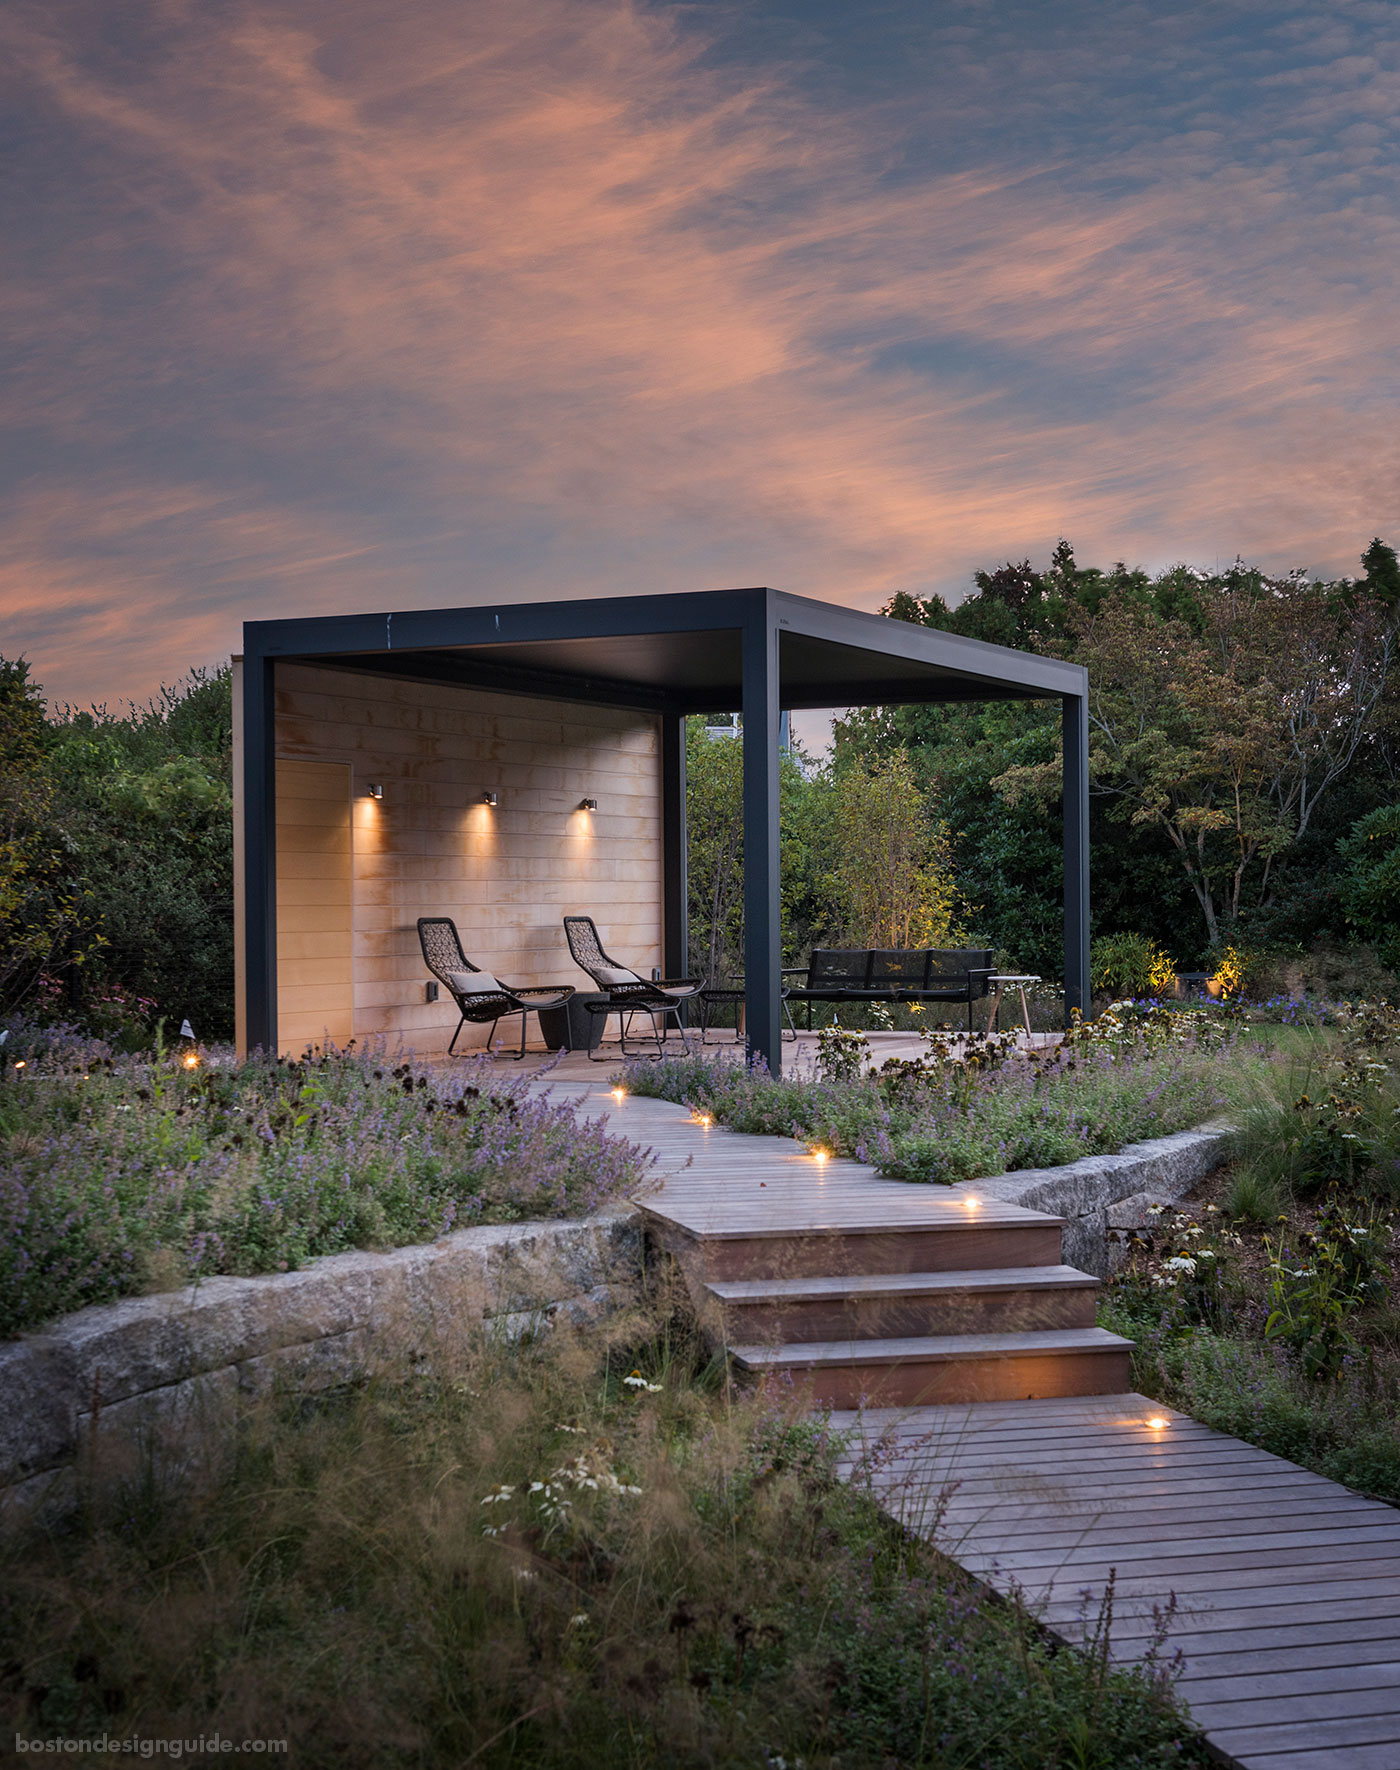 Screened pergola within a coastal meadow designed by SiteCreative landscape architecture and constructed by Schumacher Companies